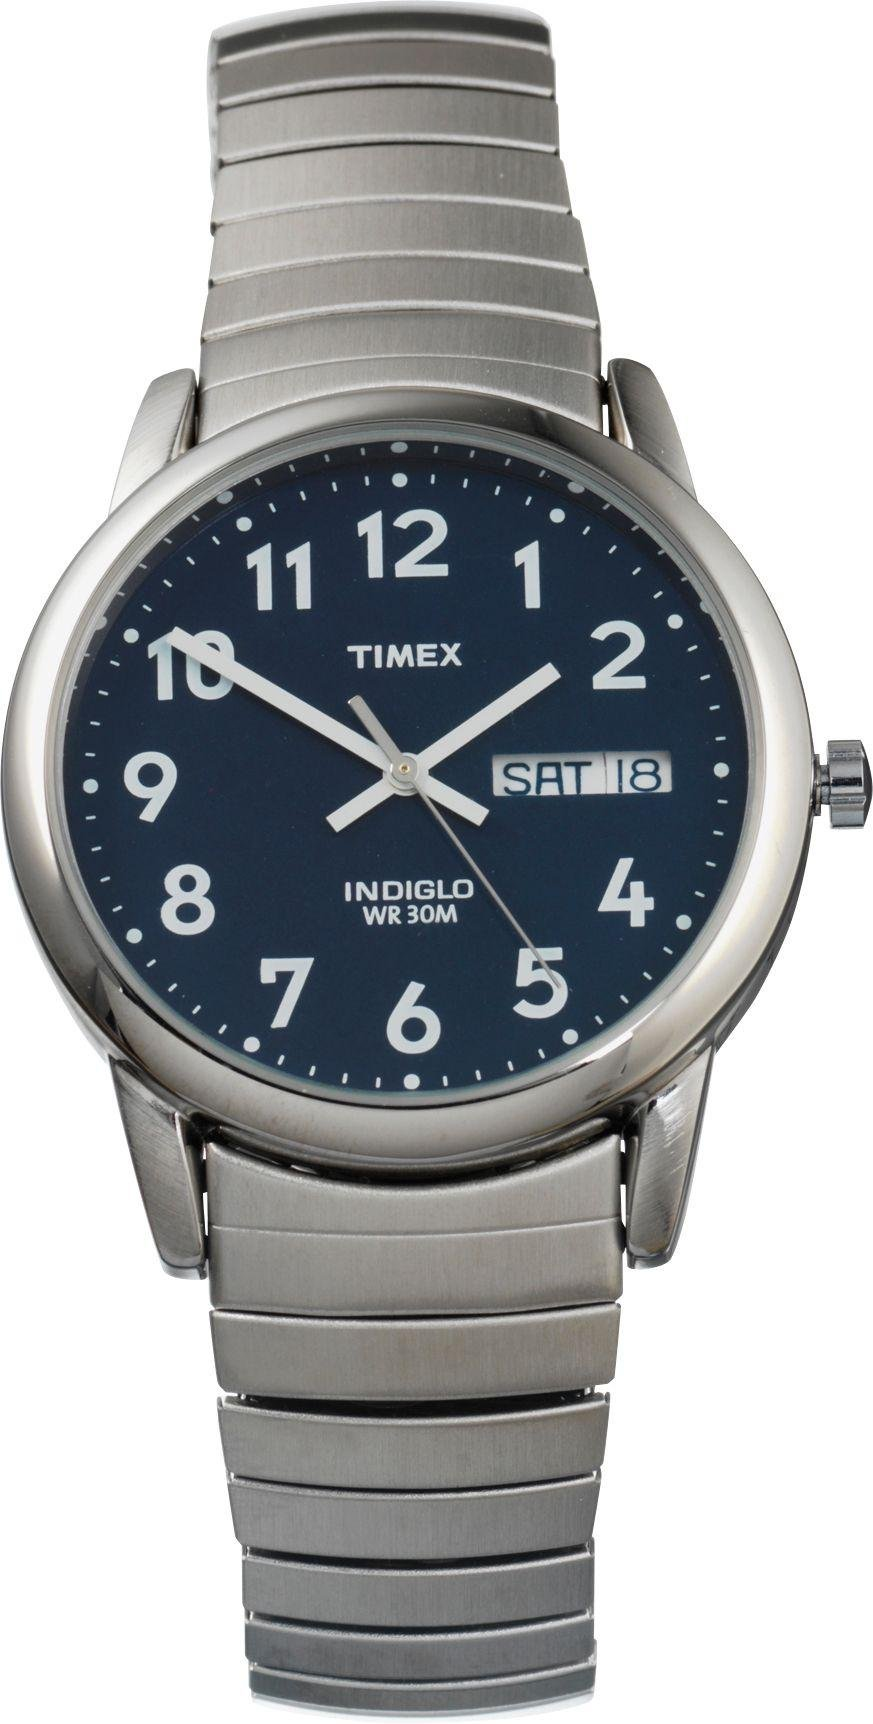 Timex - Mens Classic Indiglo Blue Dial Expander - Watch lowest price